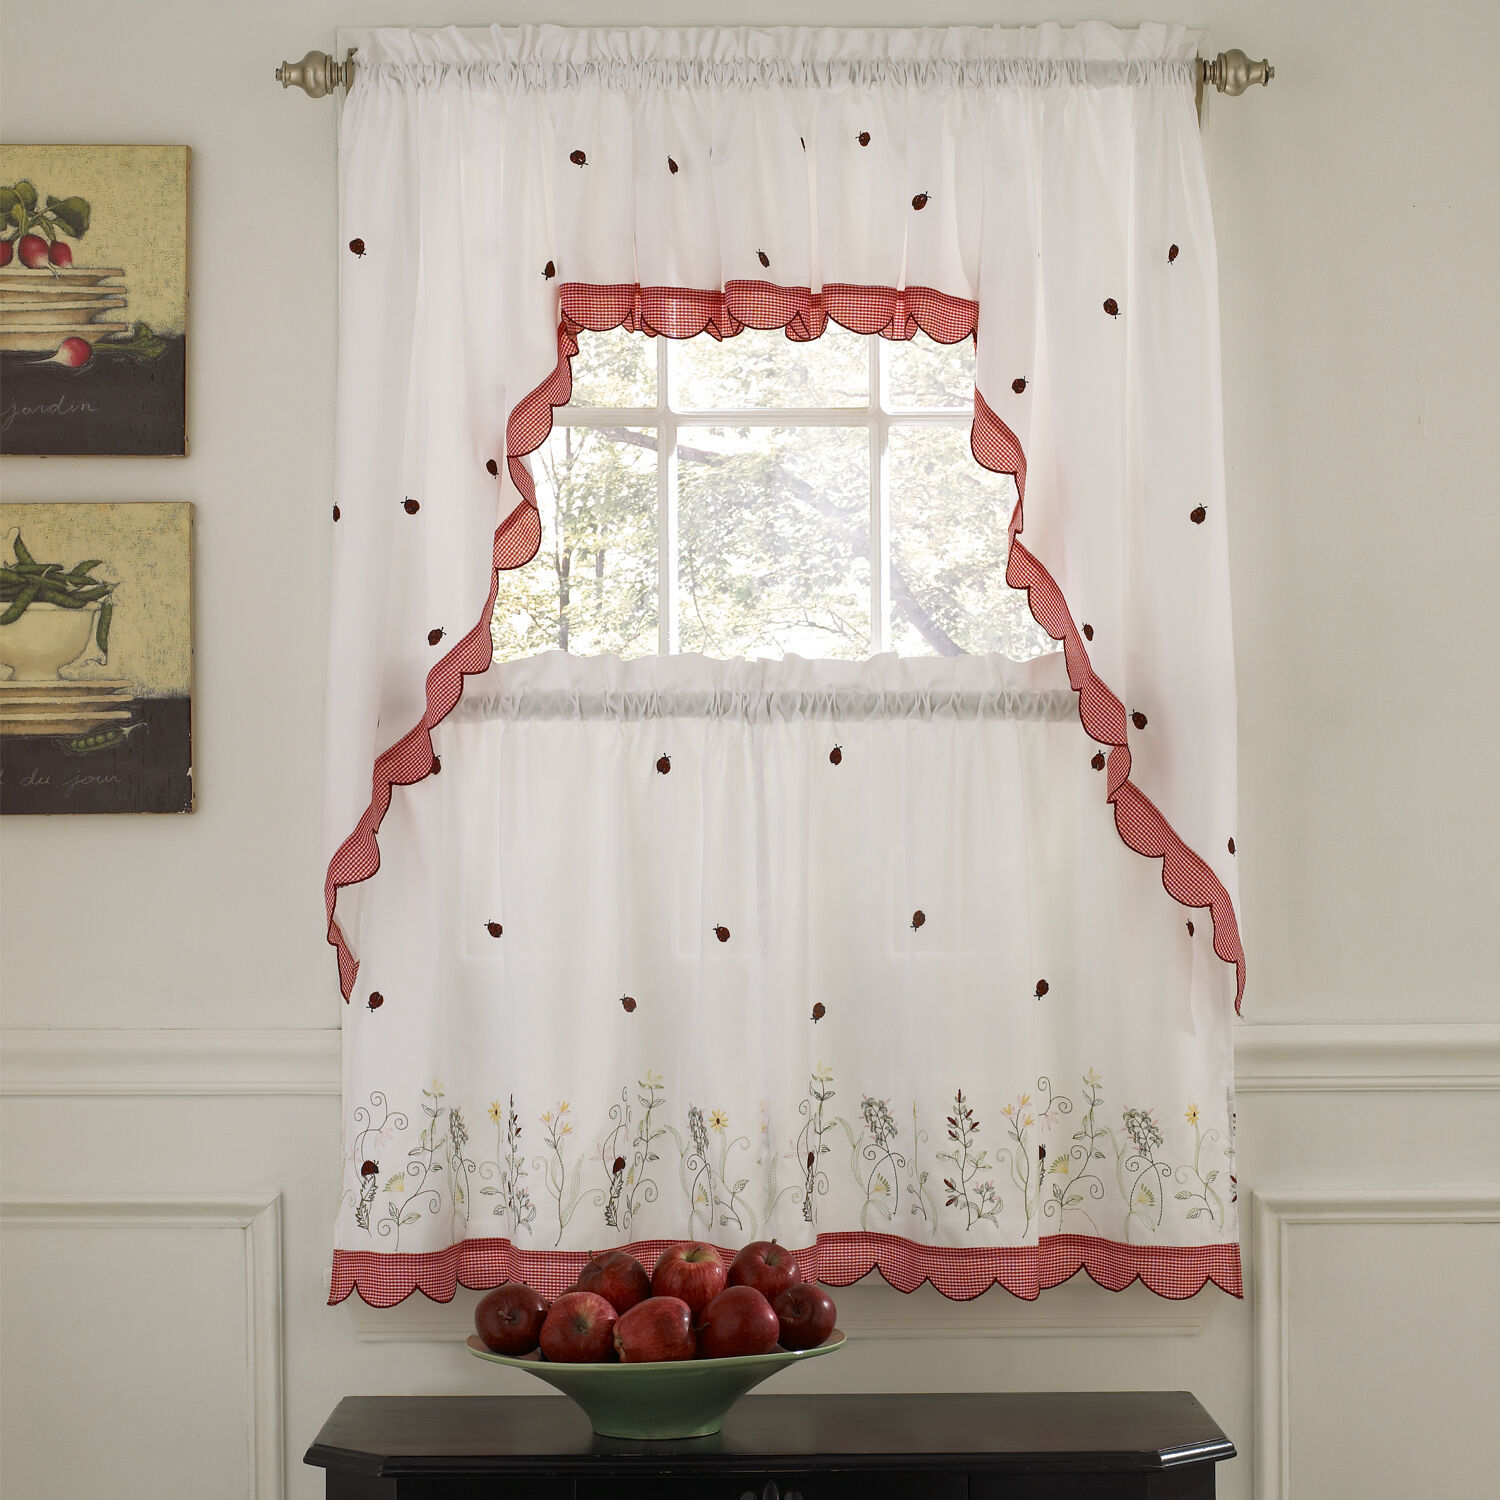 Primary image for Embroidered Ladybug Meadow Kitchen Curtains Choice of Tiers or Valance or Swags